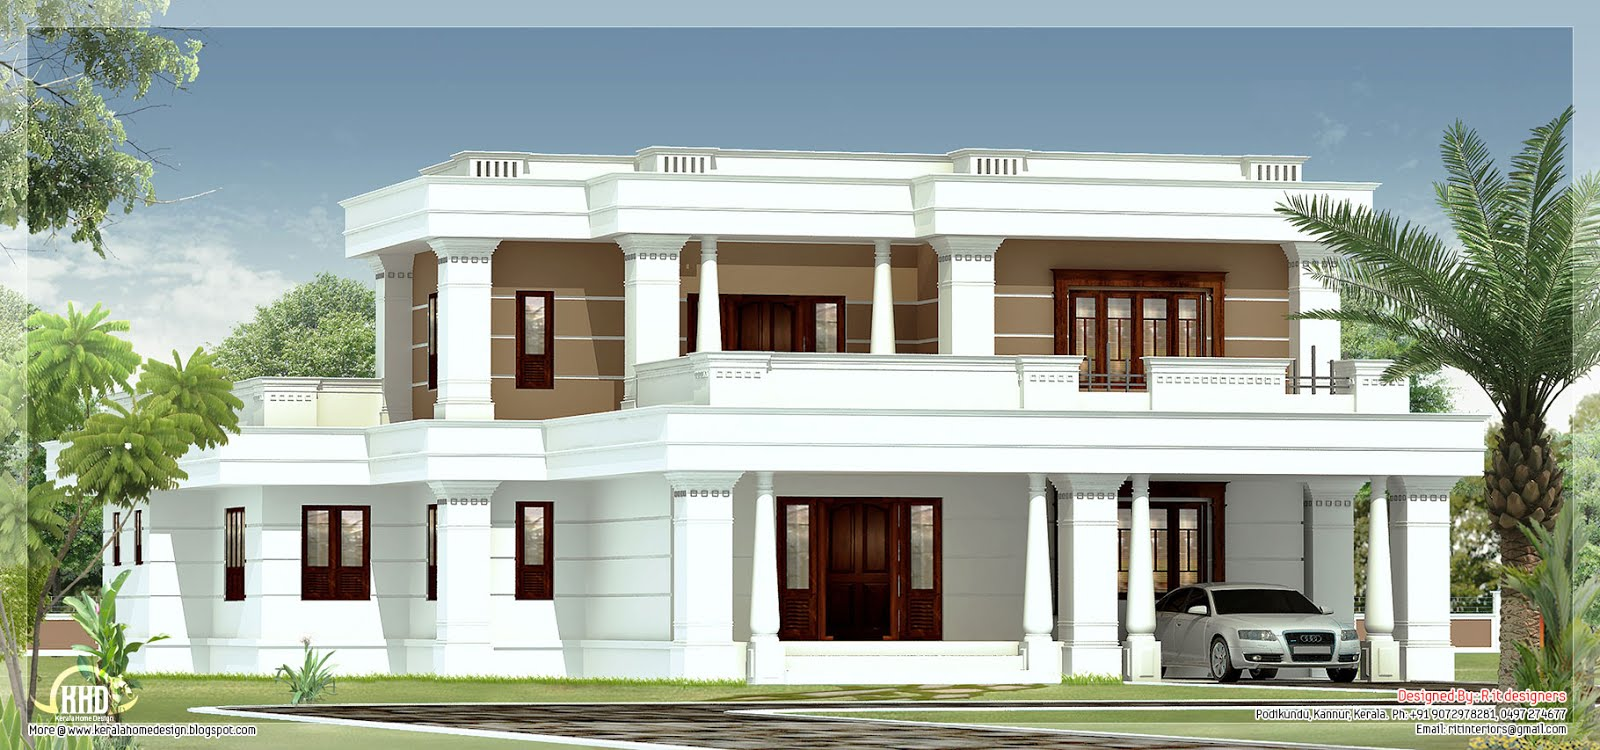 4 bedroom flat roof villa kerala home design and floor plans for Four bedroom flat